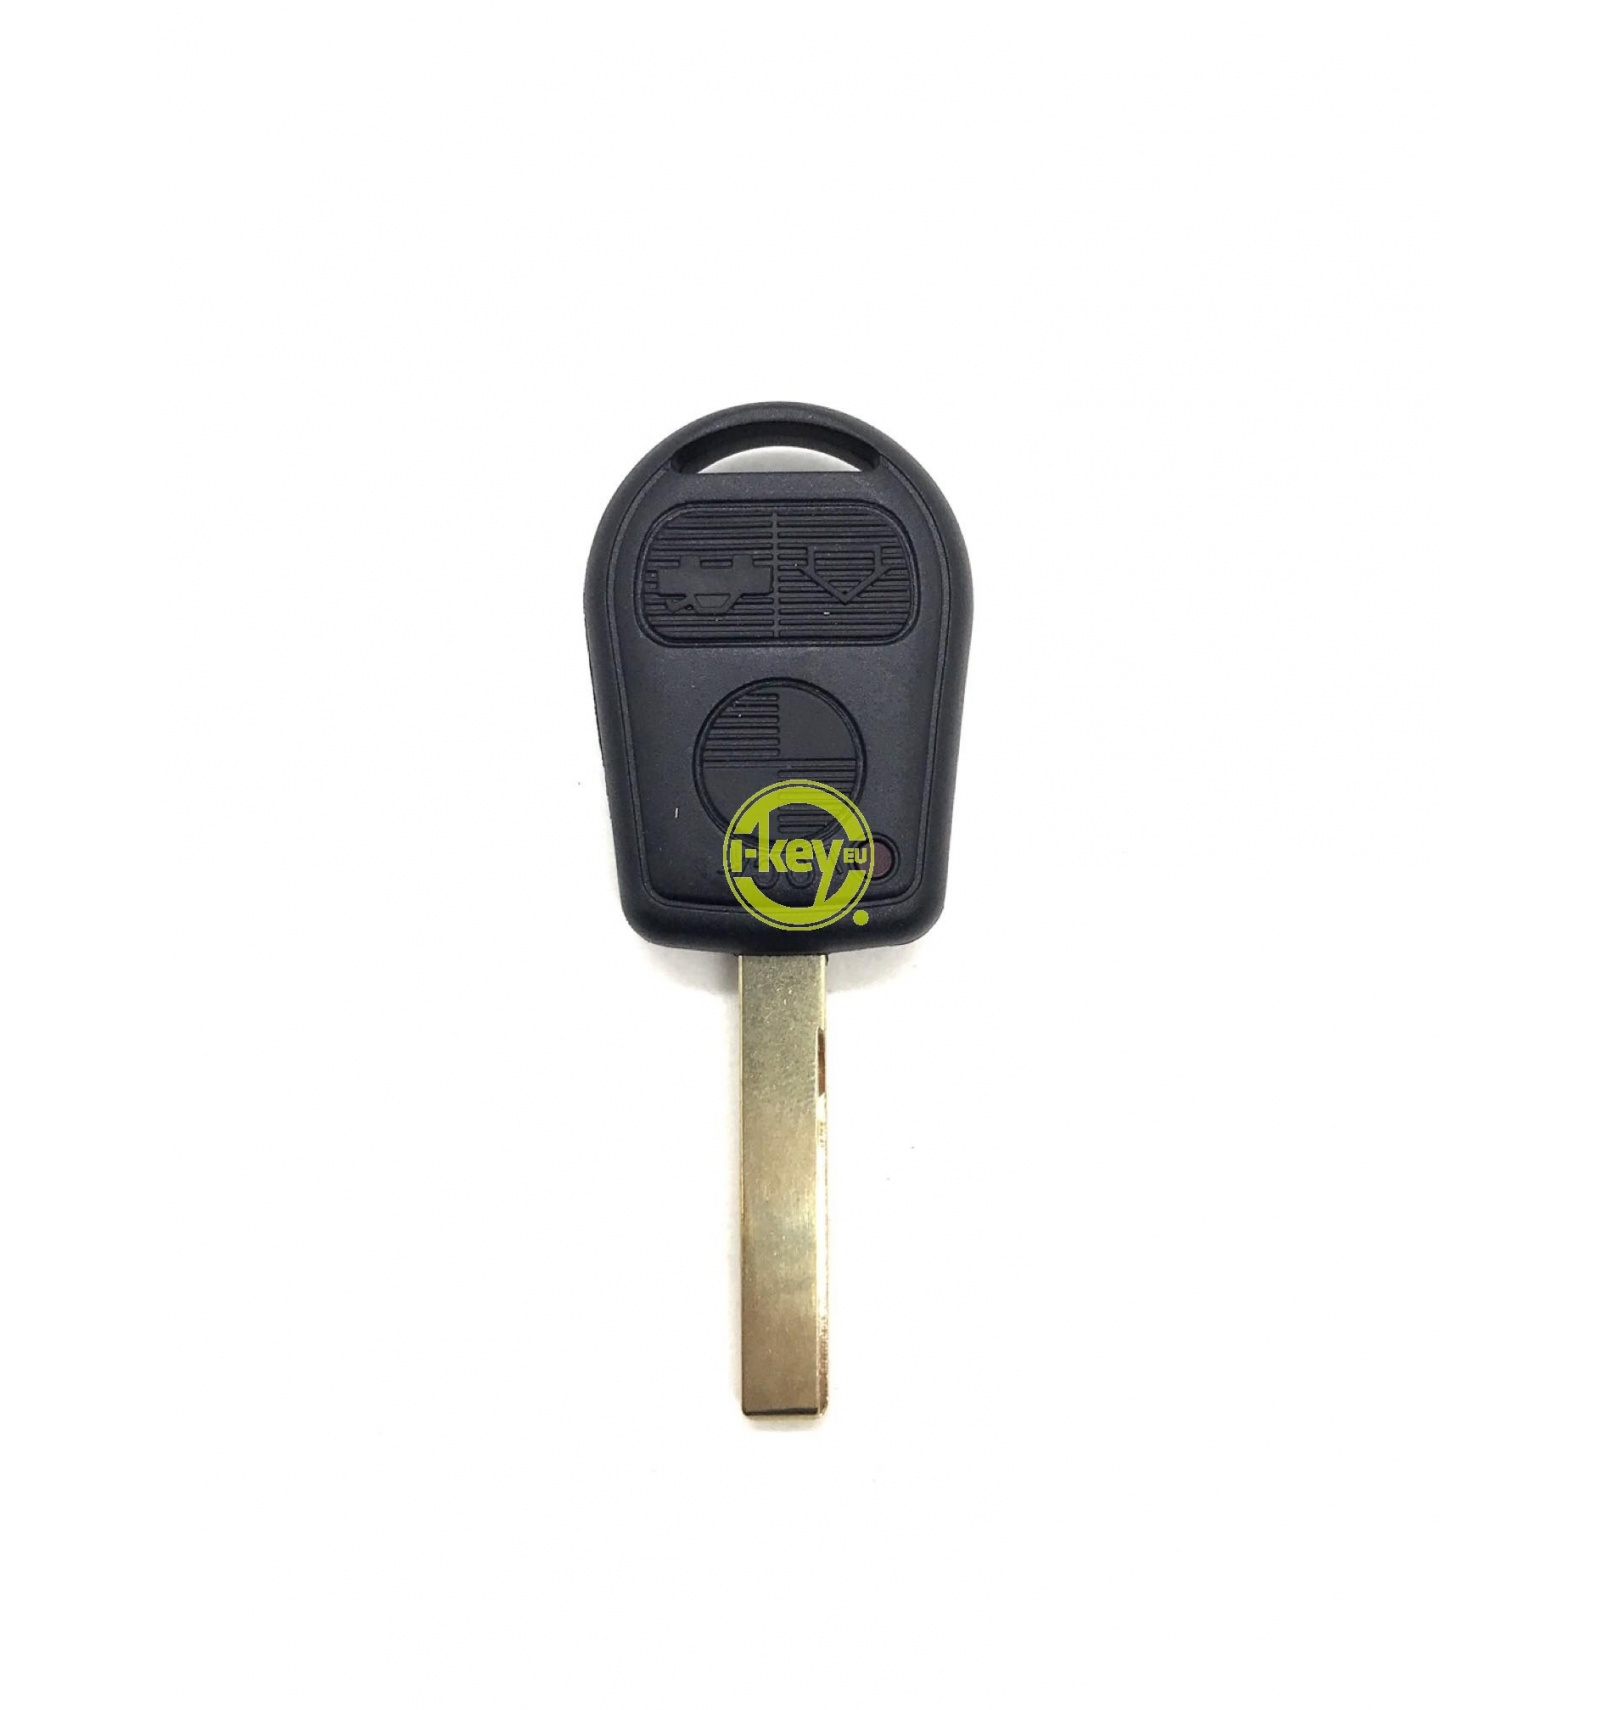 Bmw Land Rover Old Model Ews Pcf7935 433mhz 3 Buttons I Key Eu Ltd